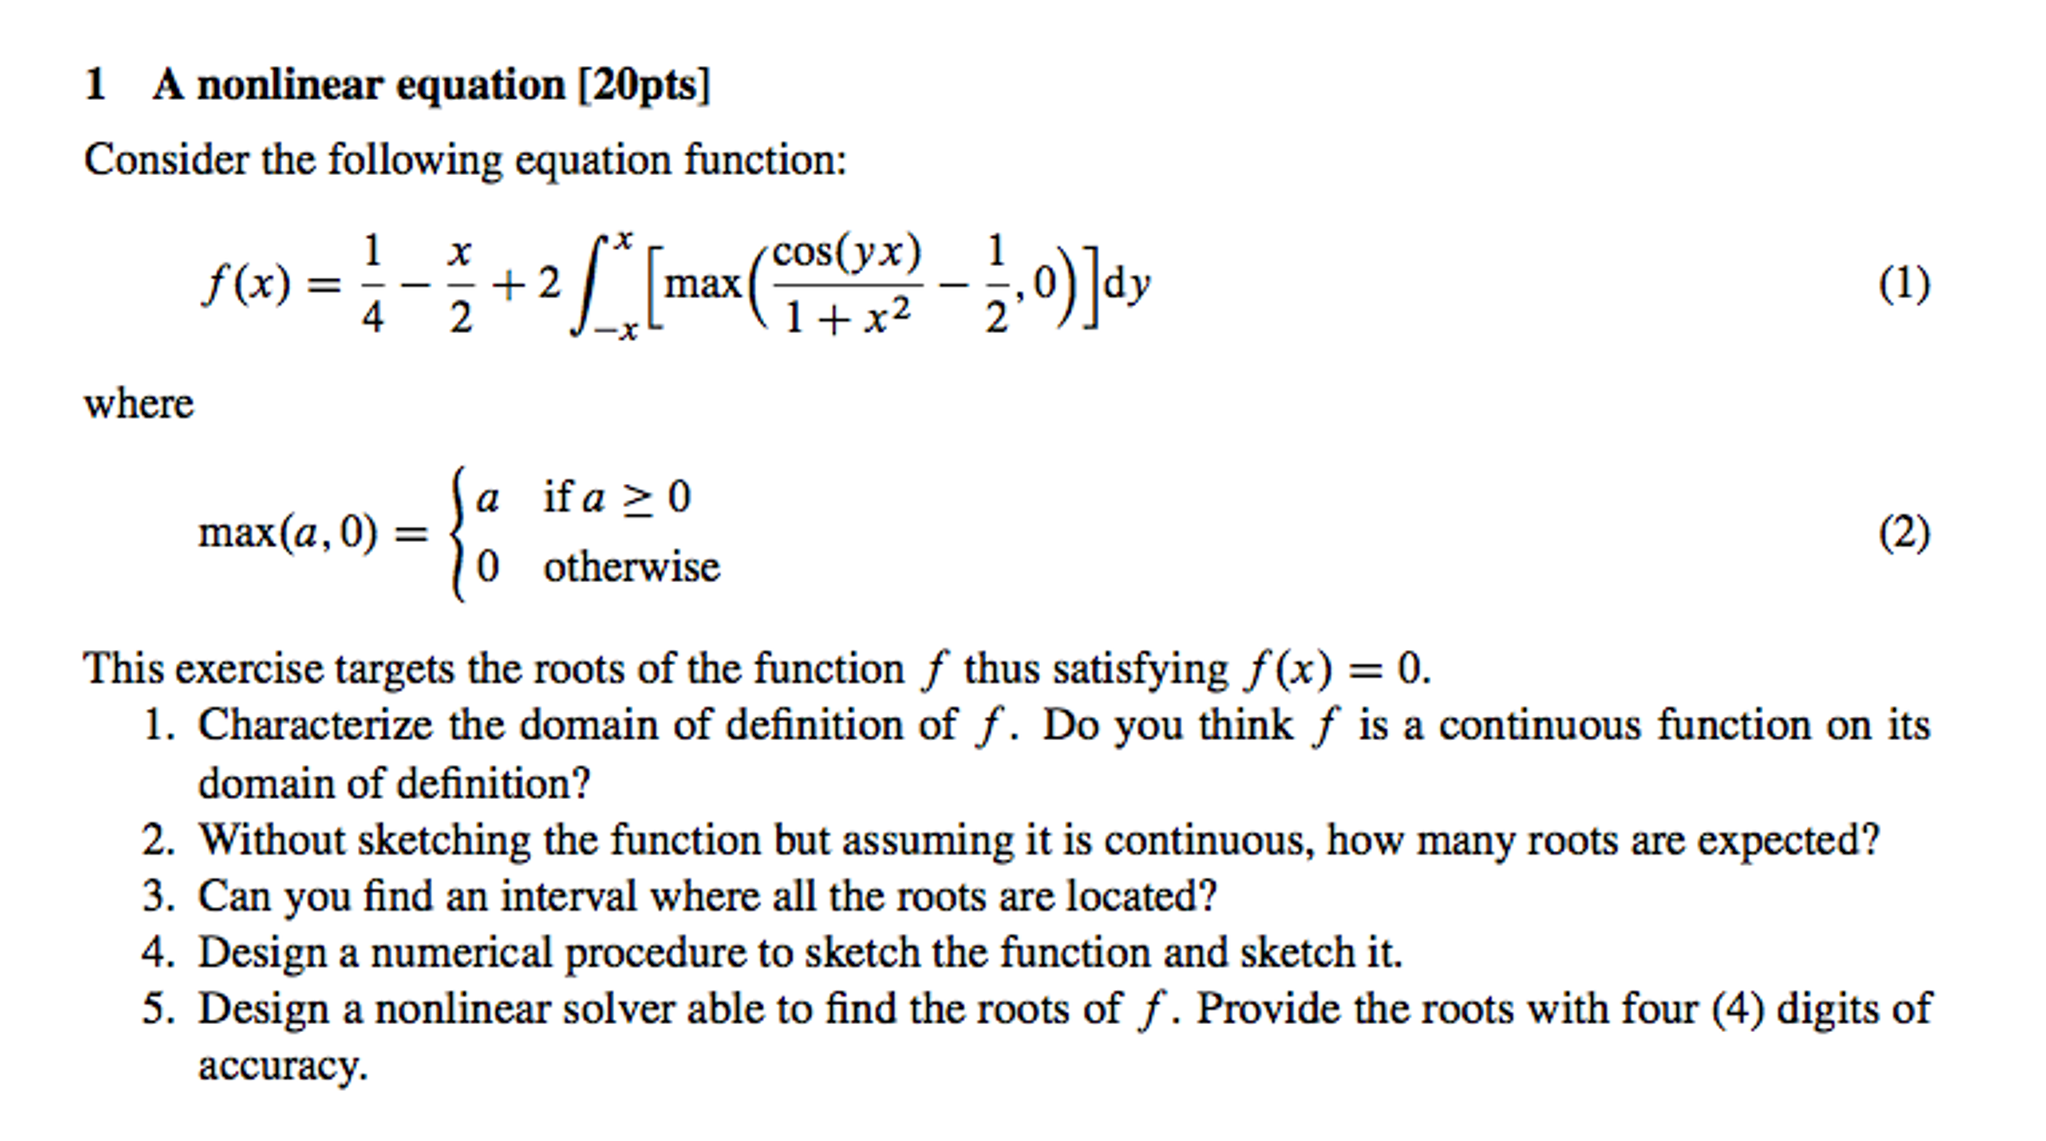 a nonlinear equation consider the following equati | chegg